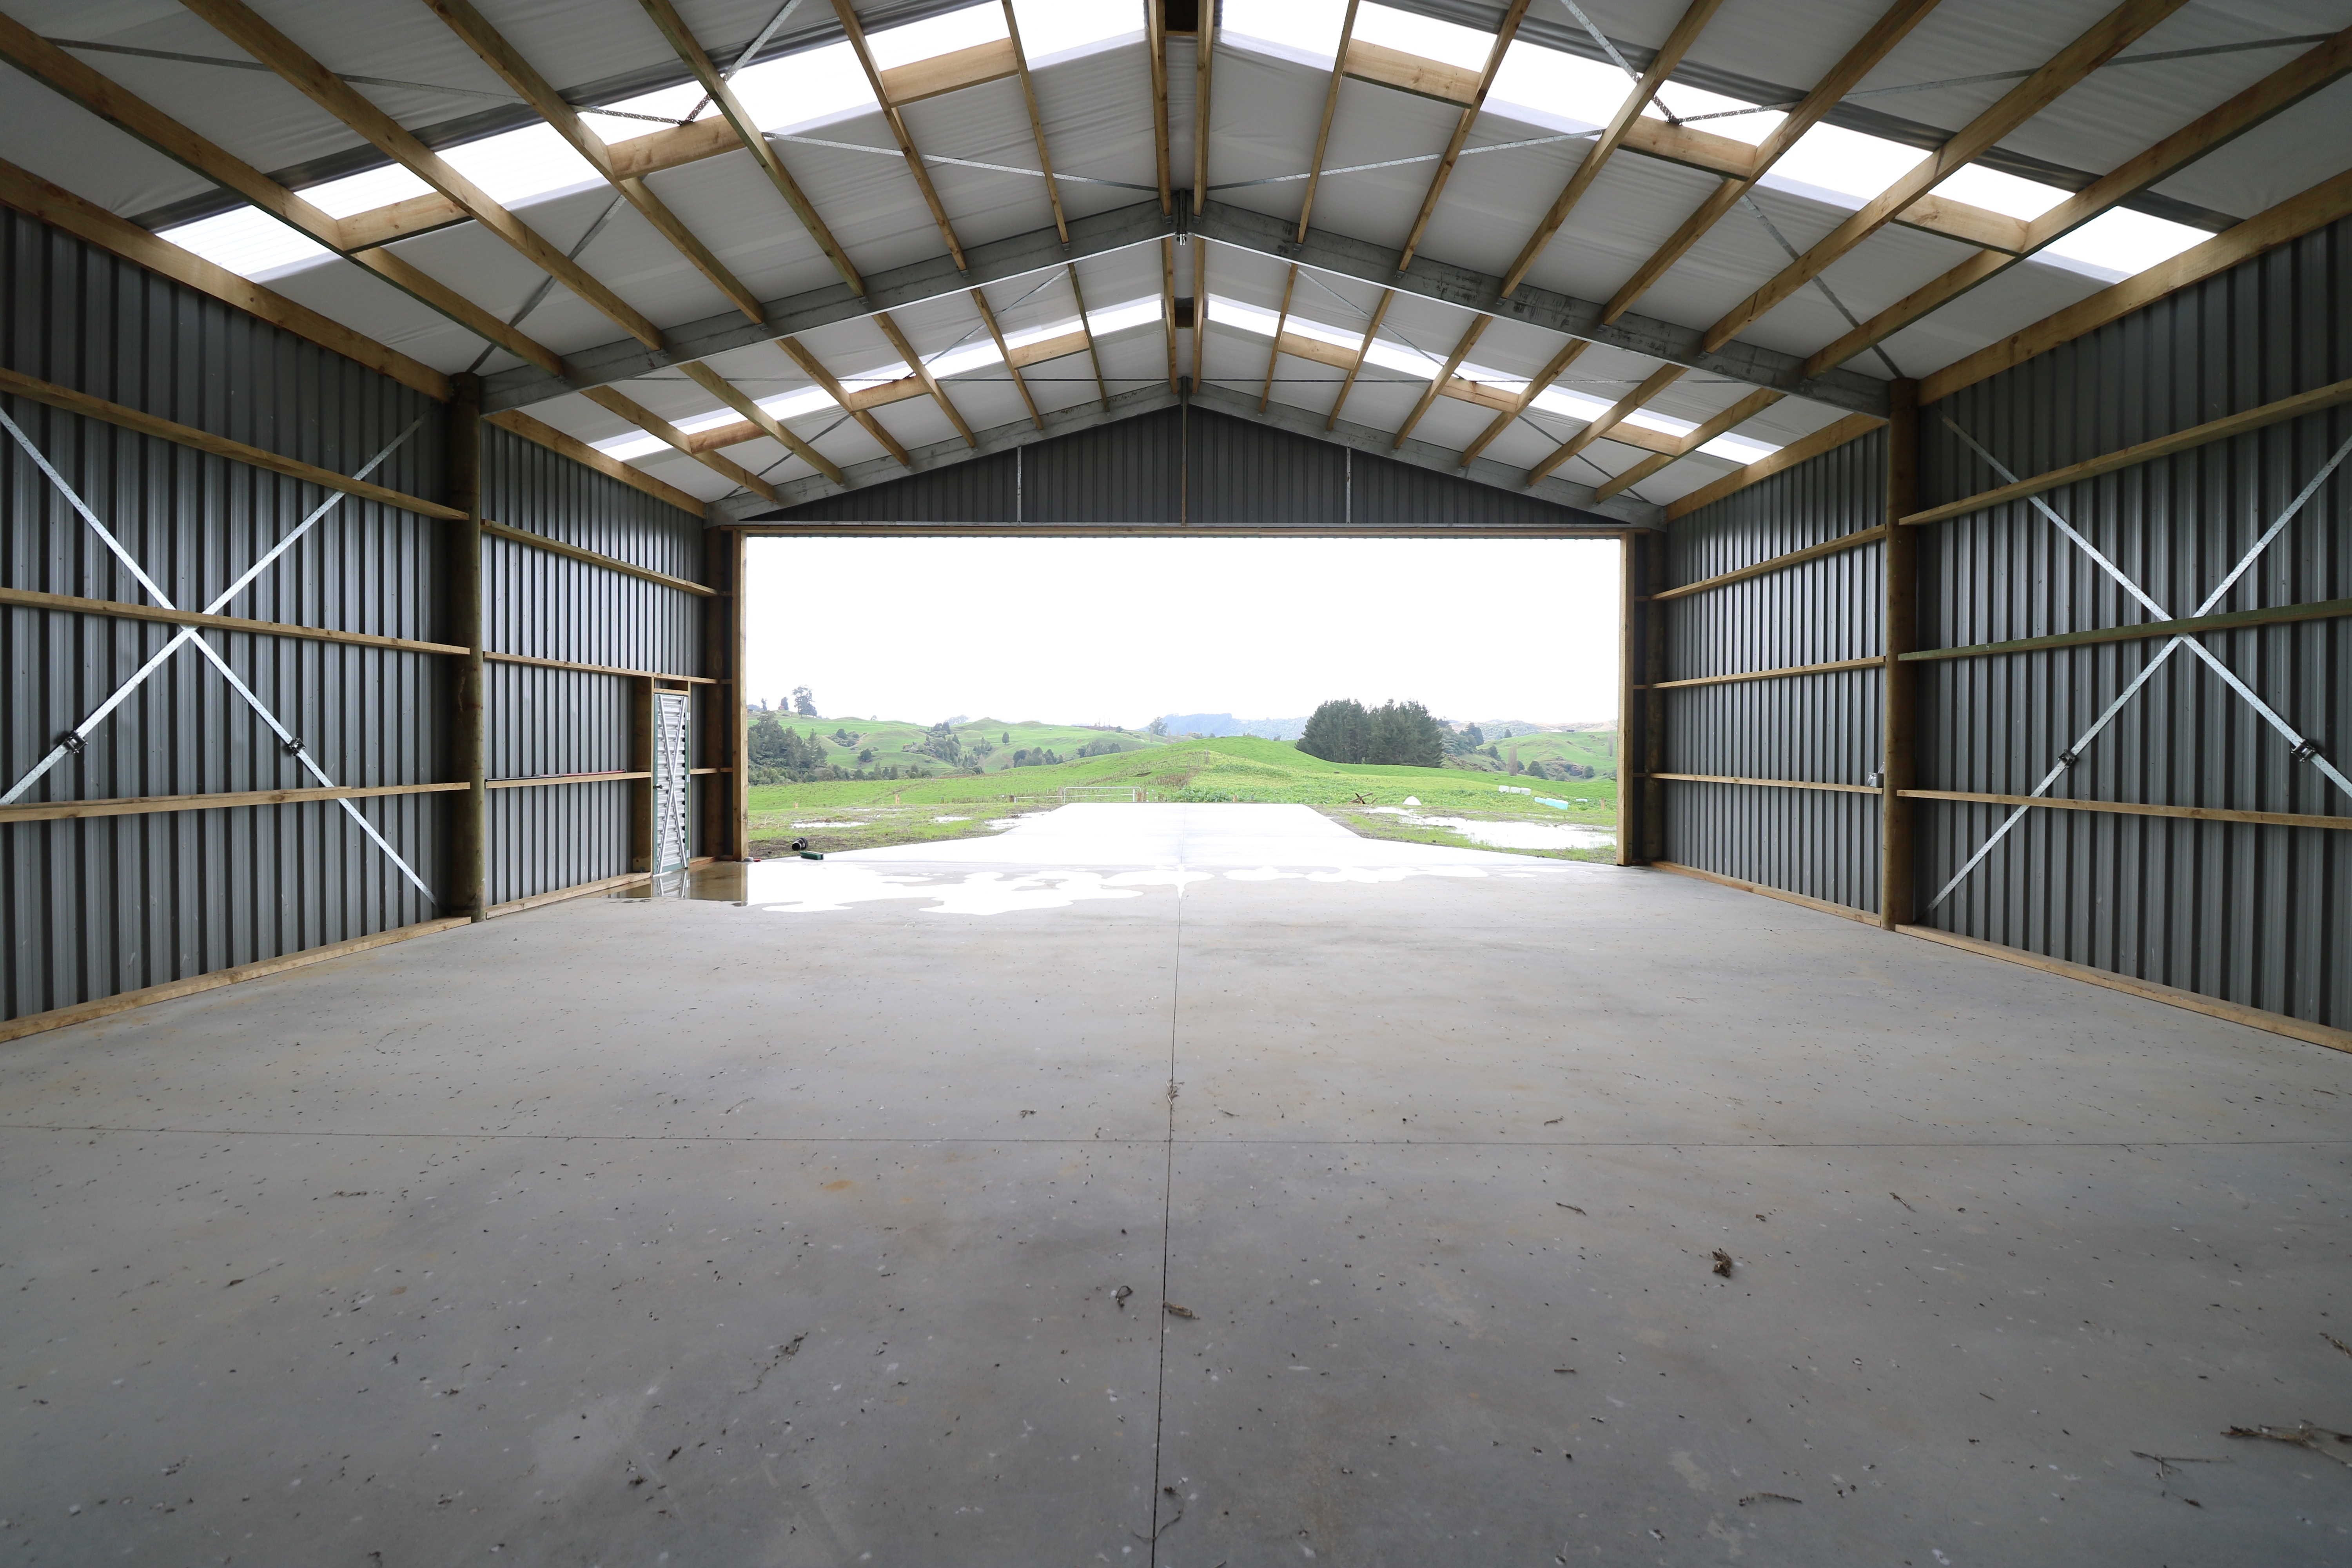 FIlled in gable aircraft hangar